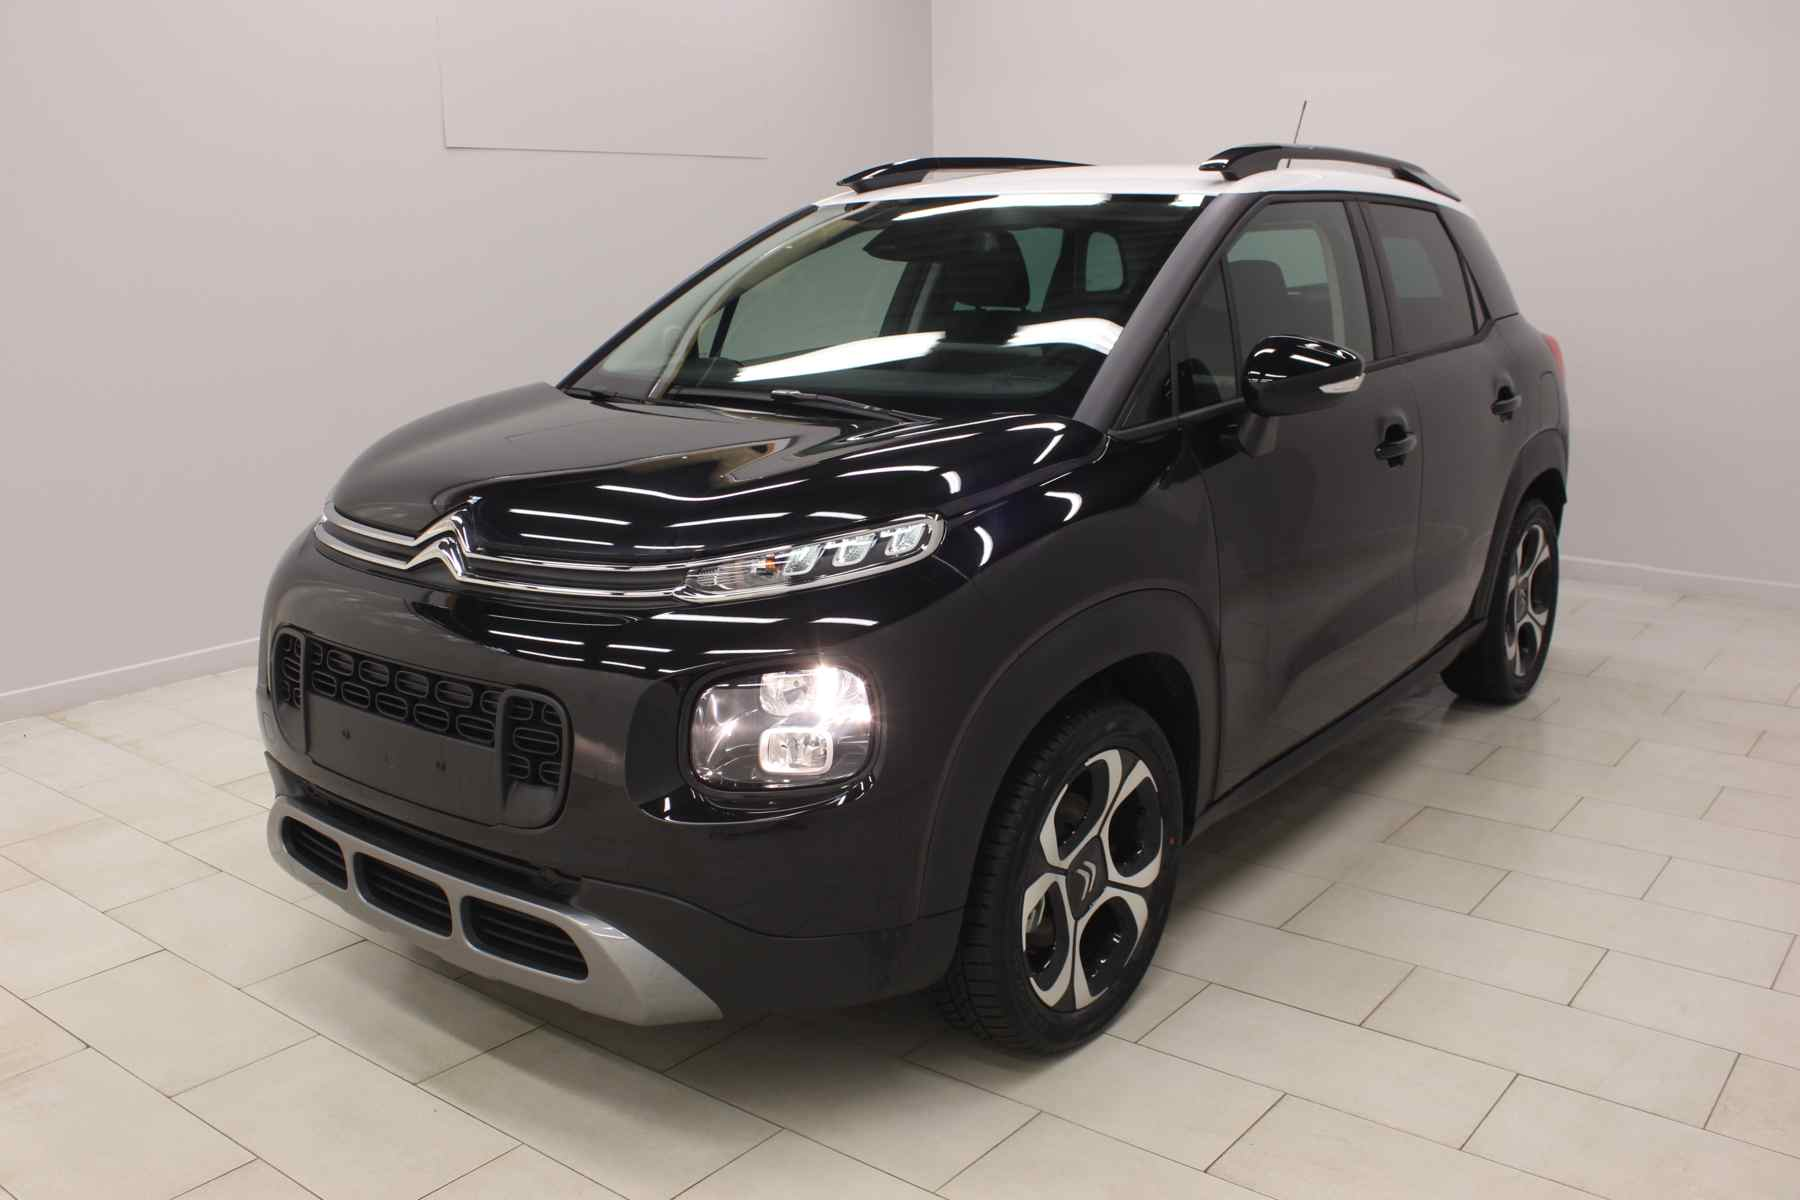 Acheter CITROEN C3 Aircross PureTech 110 S&S Shine Ink Black Toit Natural White + Park assist + Grip Control avec options chez un mandataire auto